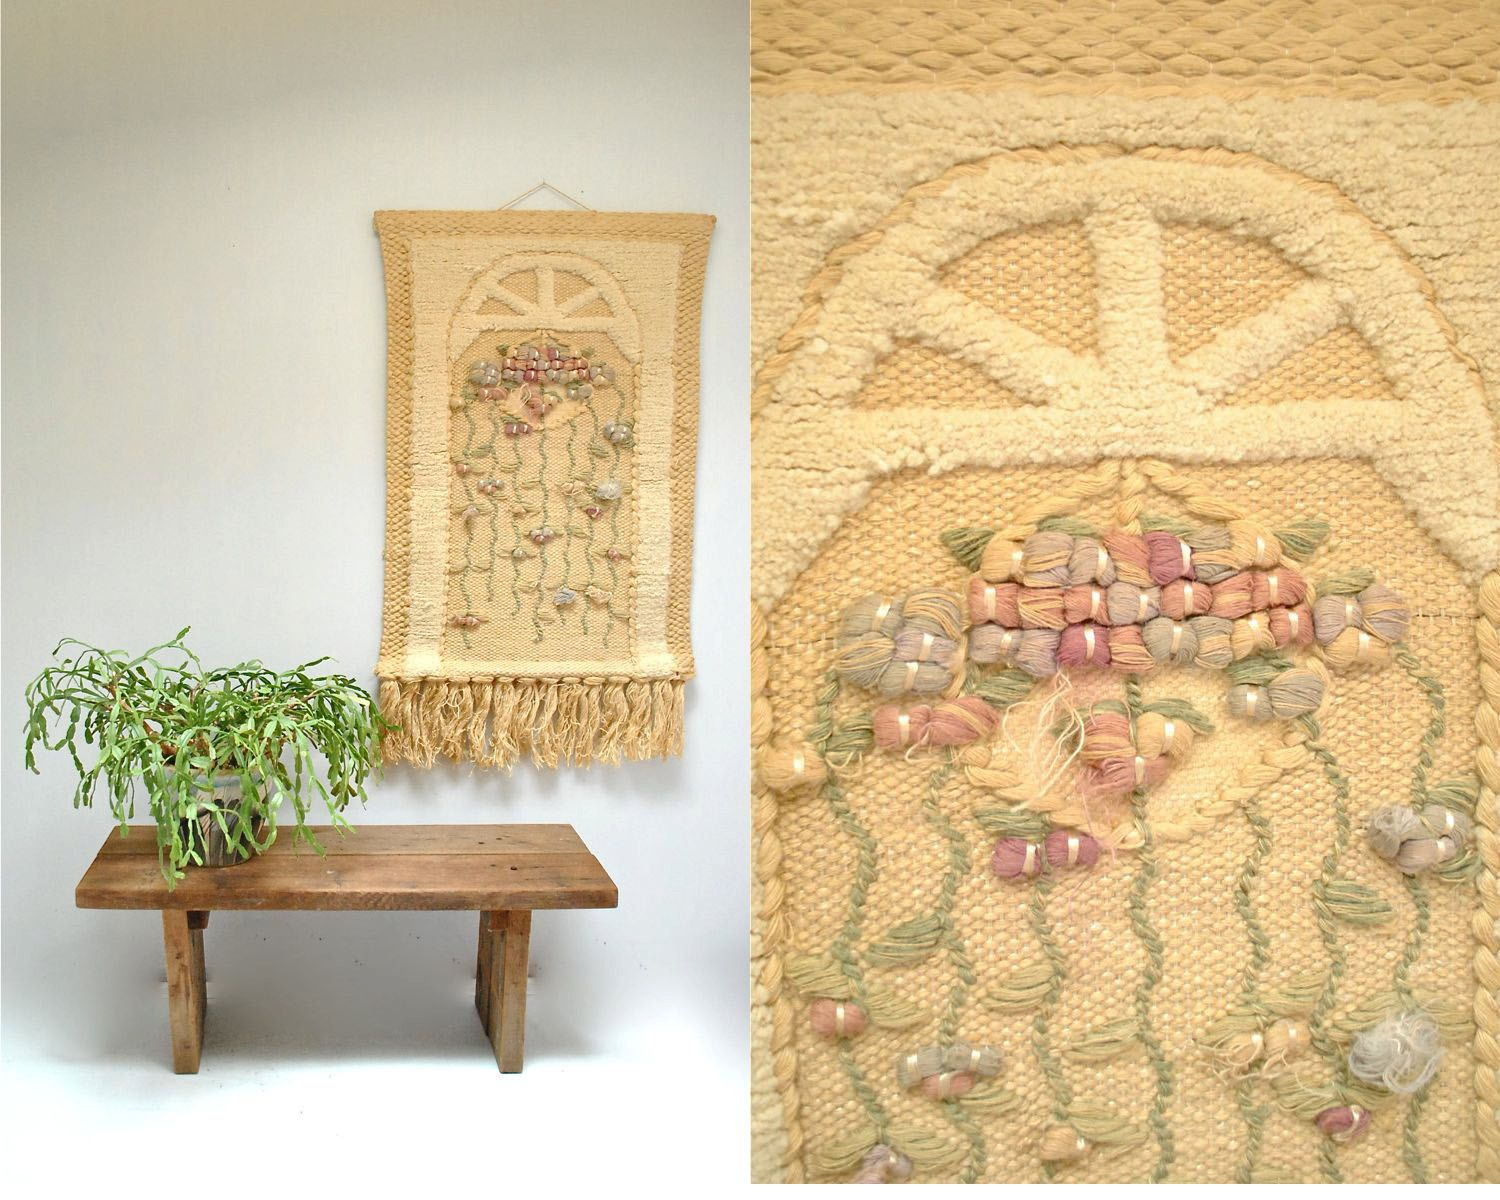 Woven Wall Hanging // Textile Fiber Art // THE WINDOW by ...